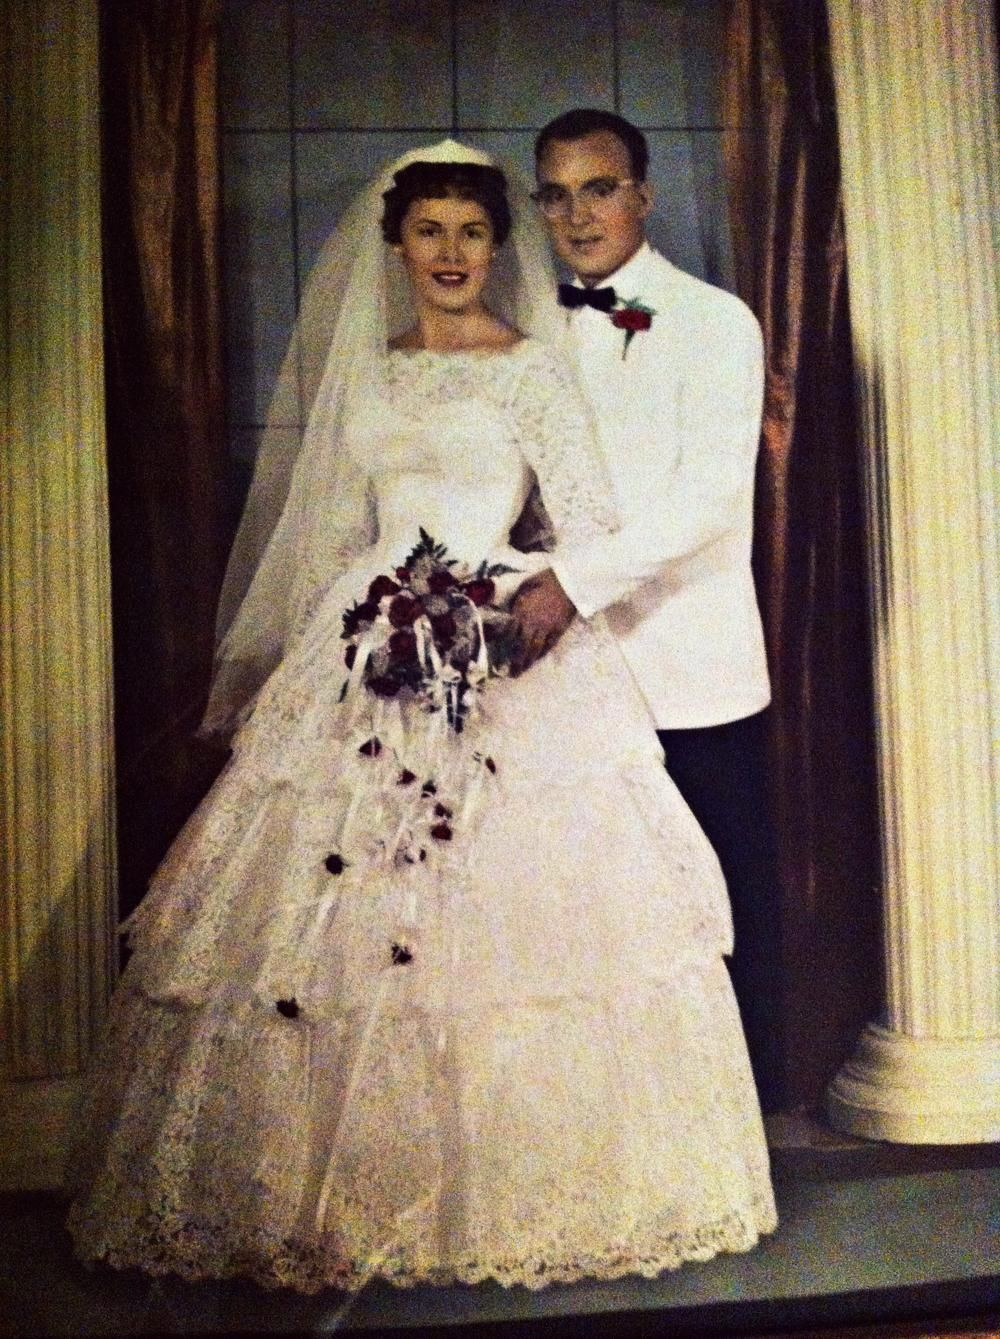 My grandparents wedding picture. (Maine, 1958) | Wedding pictures ...